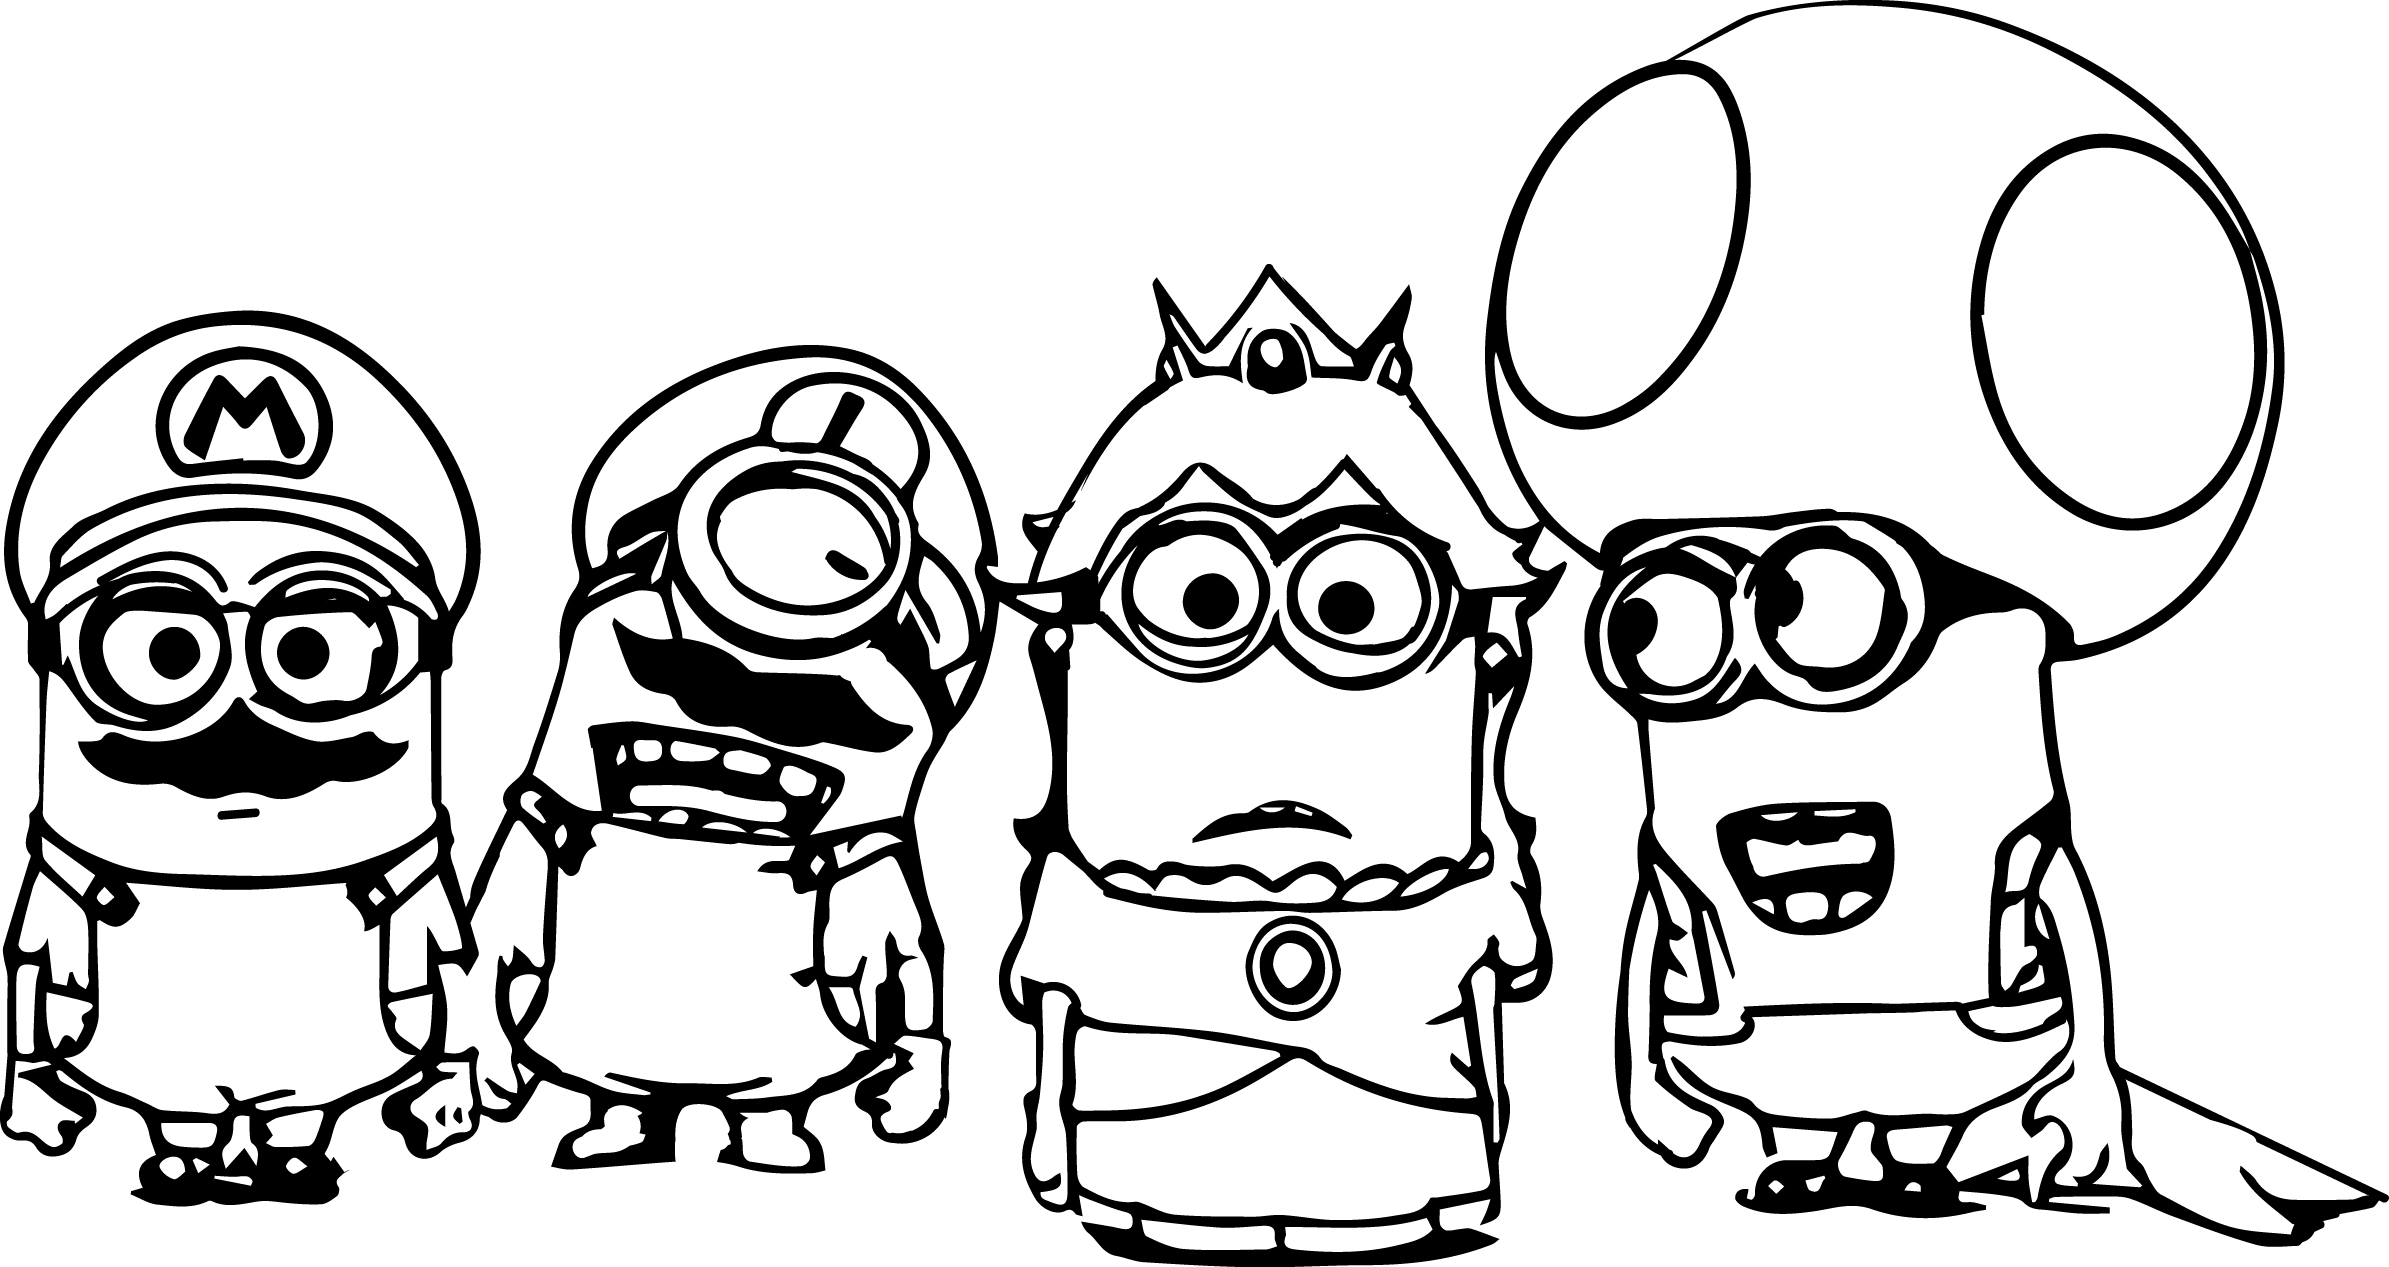 minions print minion coloring pages best coloring pages for kids minions print 1 5